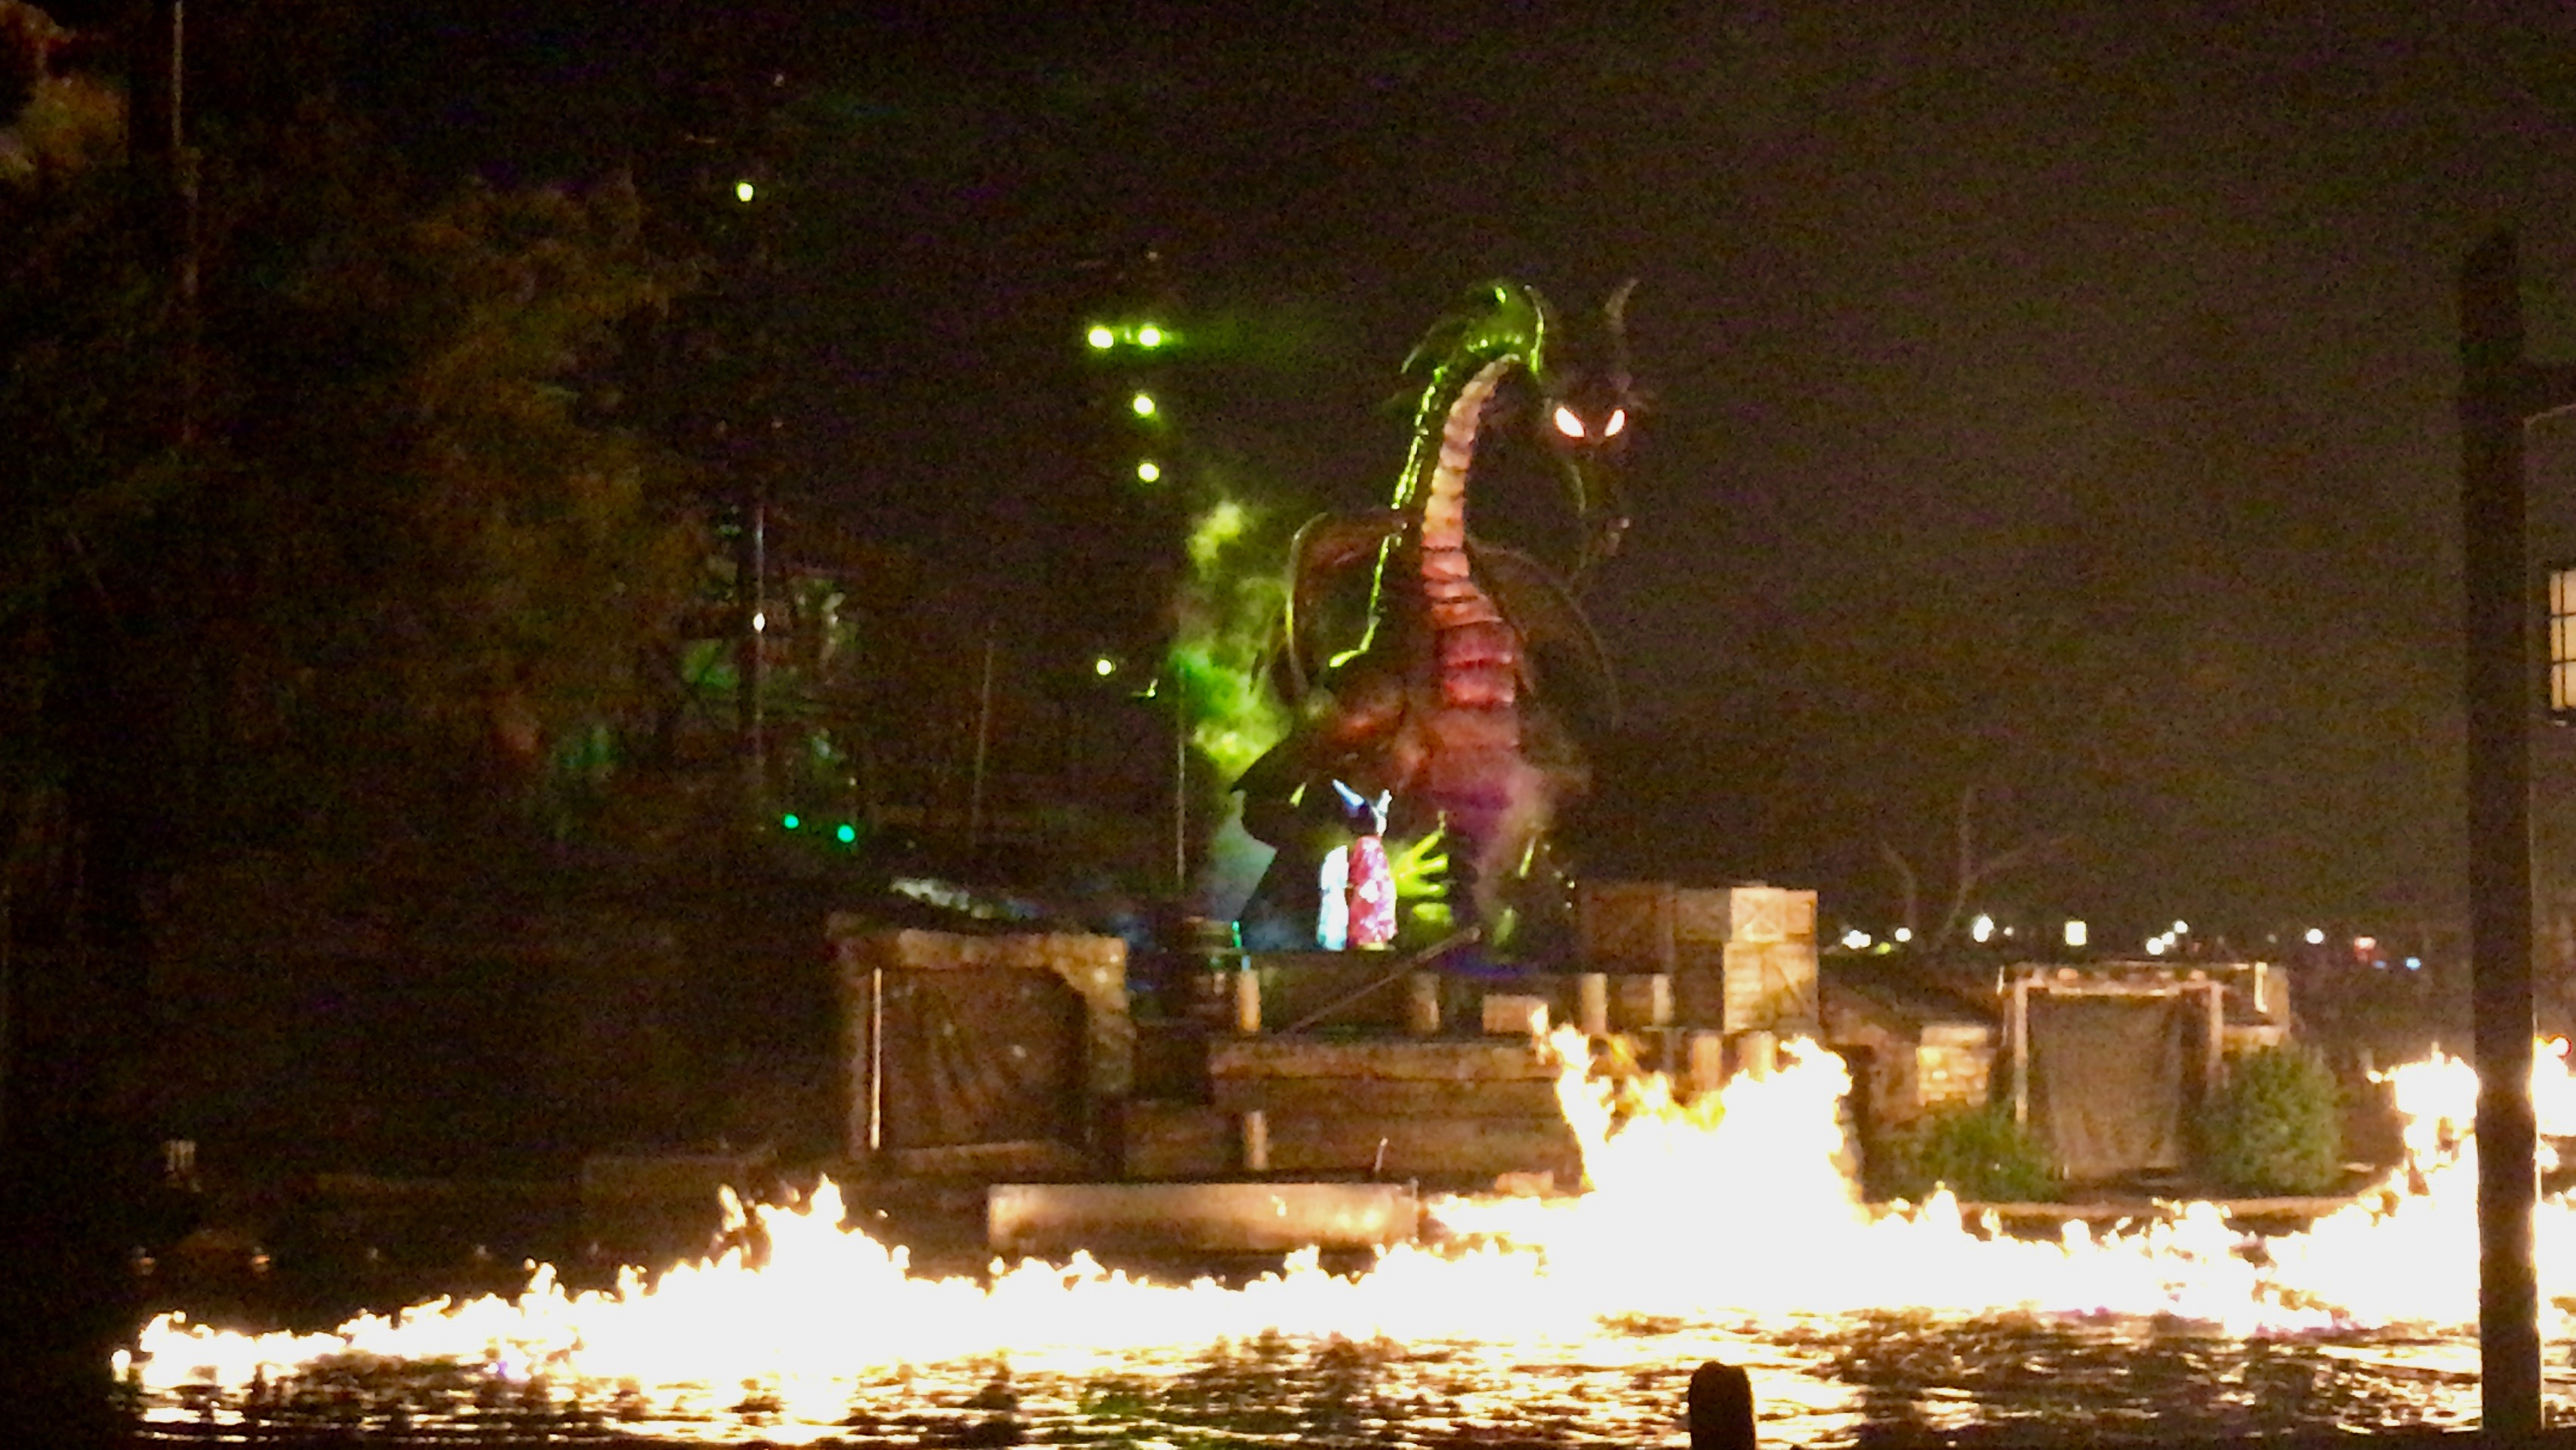 25 Years of Fantasmic! - A Look Back and a Review